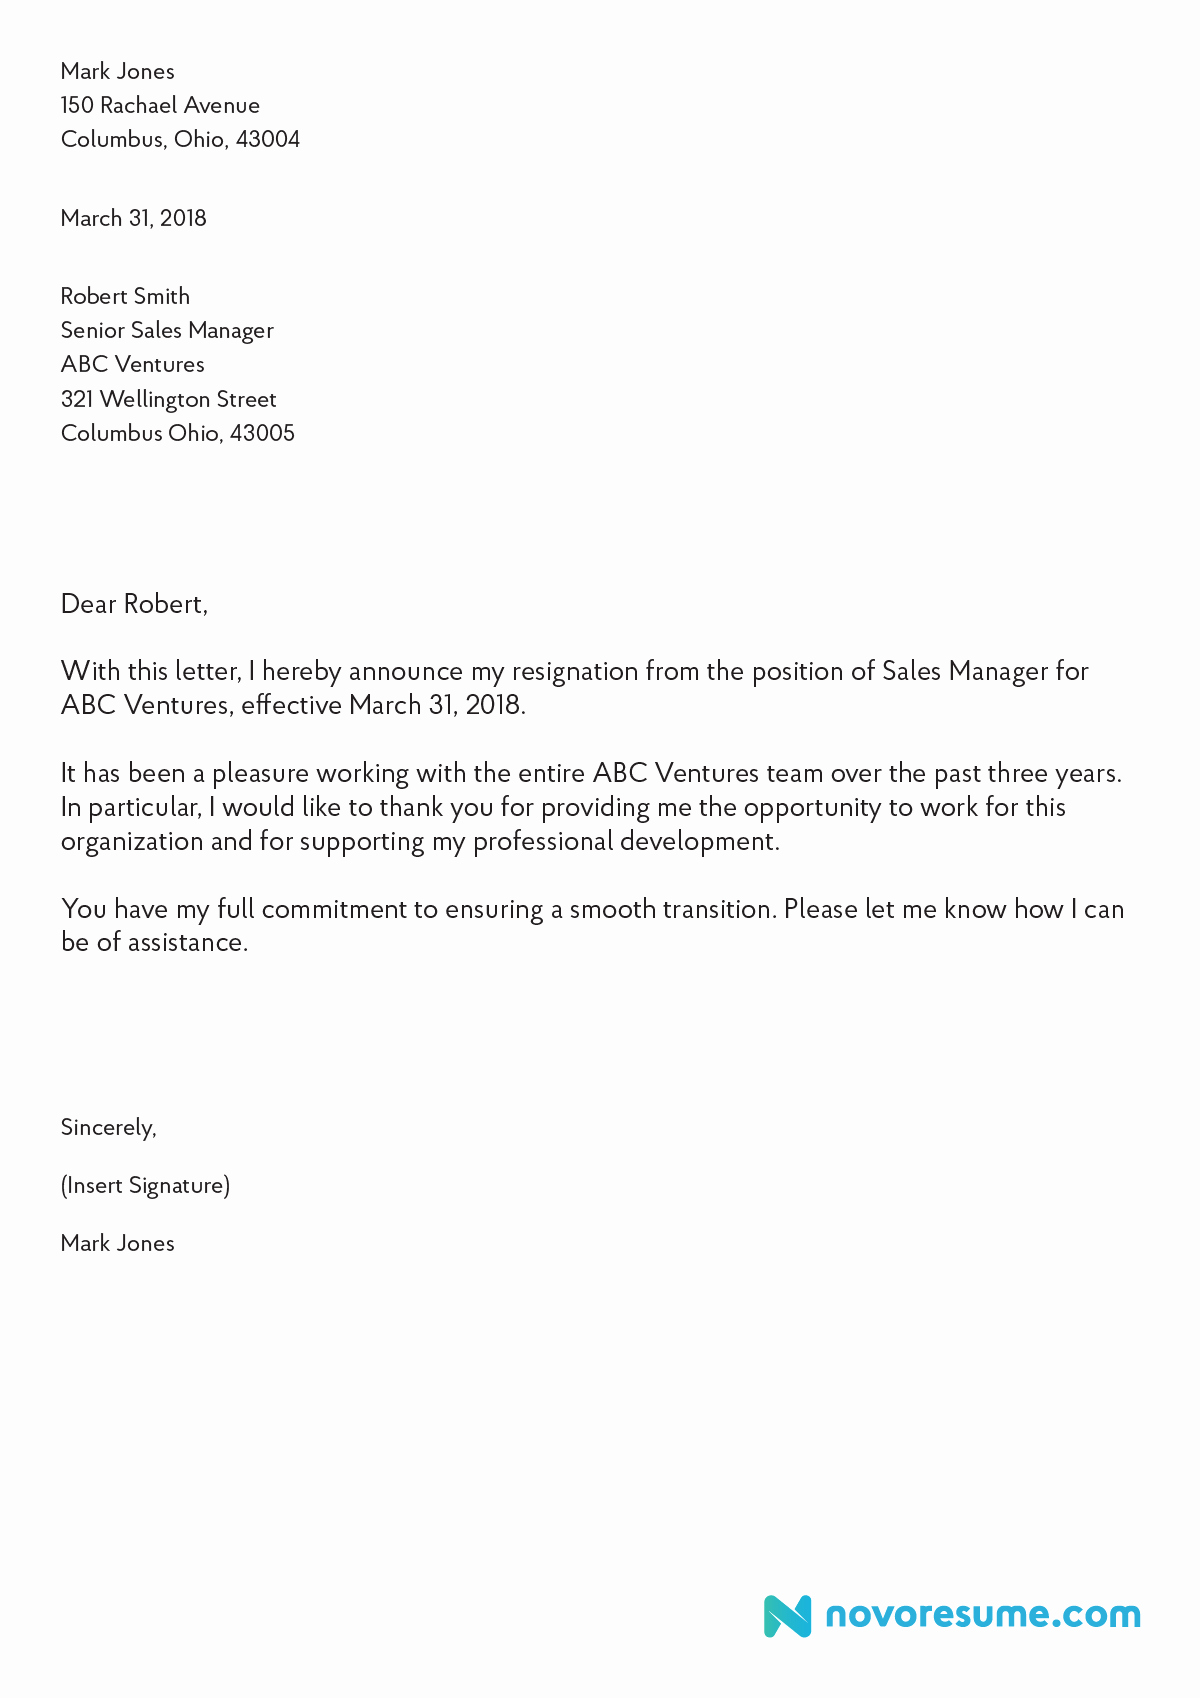 Letter Of Resignation Outline Unique How to Write A Letter Of Resignation – 2019 Extensive Guide